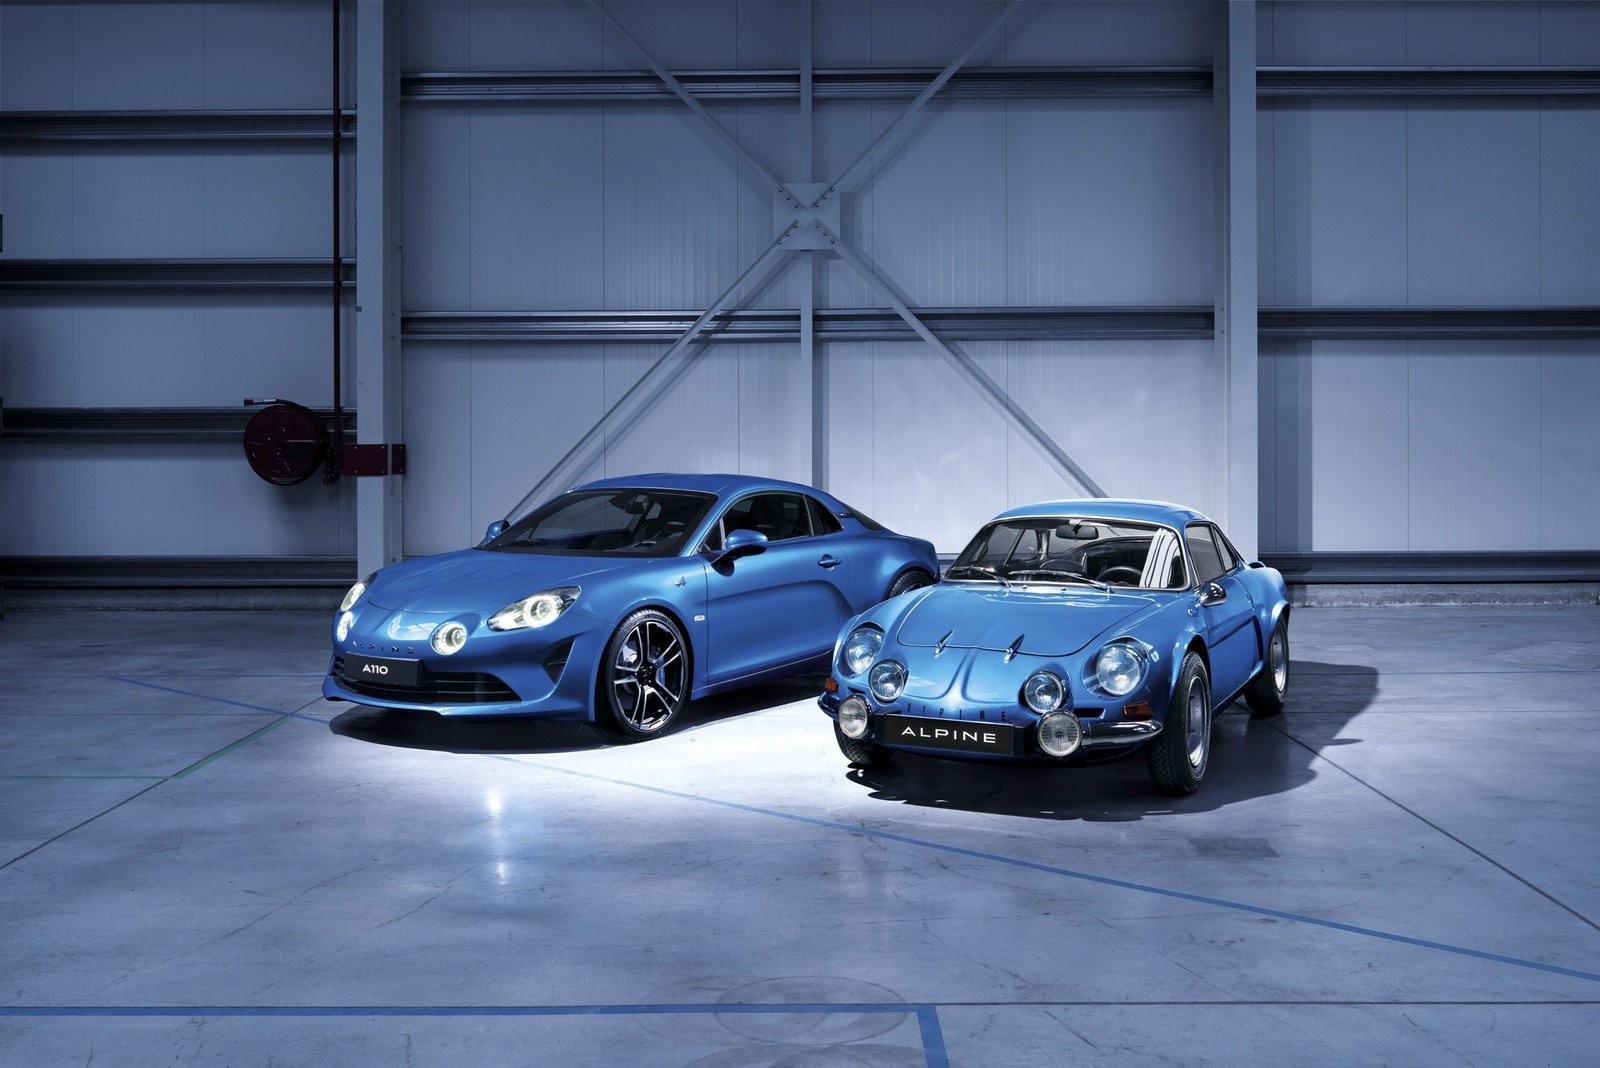 2017 renault alpine a110 picture 708534 car review top speed. Black Bedroom Furniture Sets. Home Design Ideas